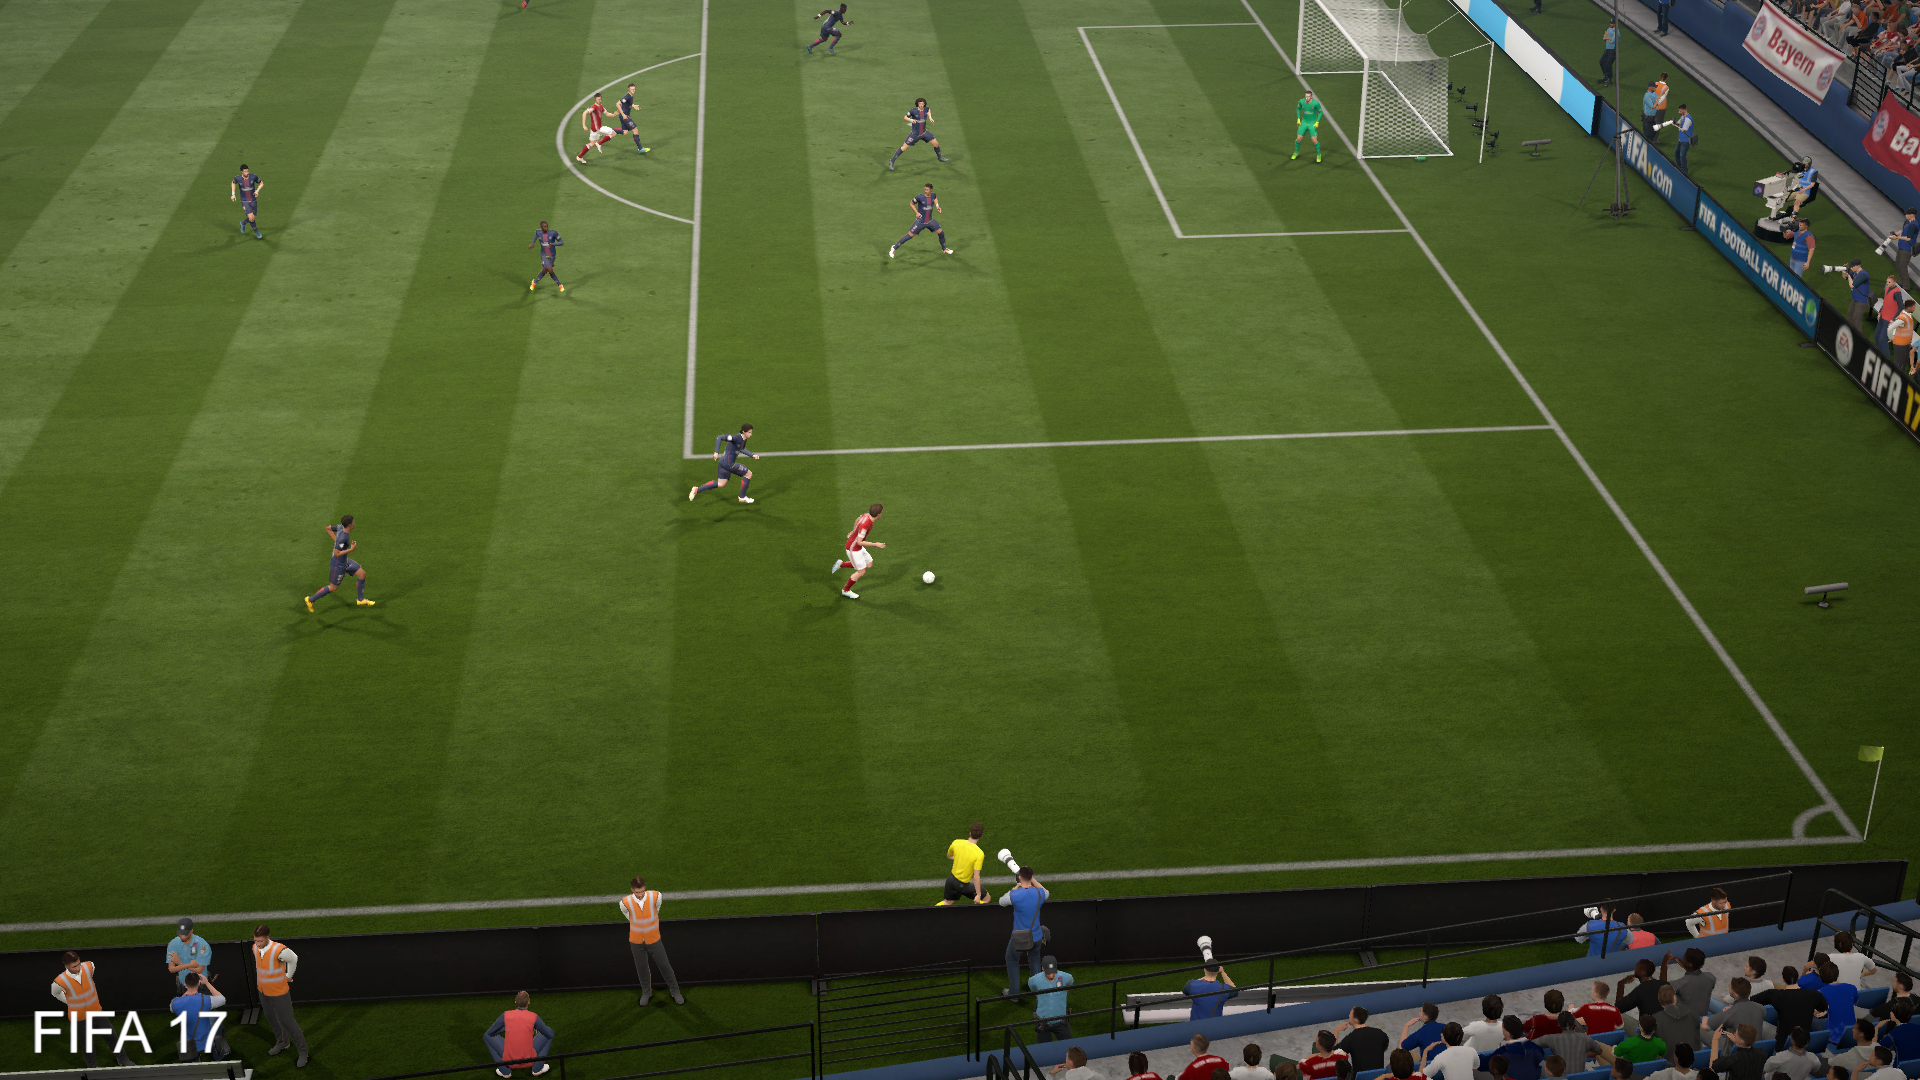 Fifa 17 How The Frostbite Engine Improves Visuals Fifa17 Standard Playstation 4 From Broadcast Camera Theres A Clear Difference In Colour Grading Between 16 And Resulting Lighter Less Vibrant Look